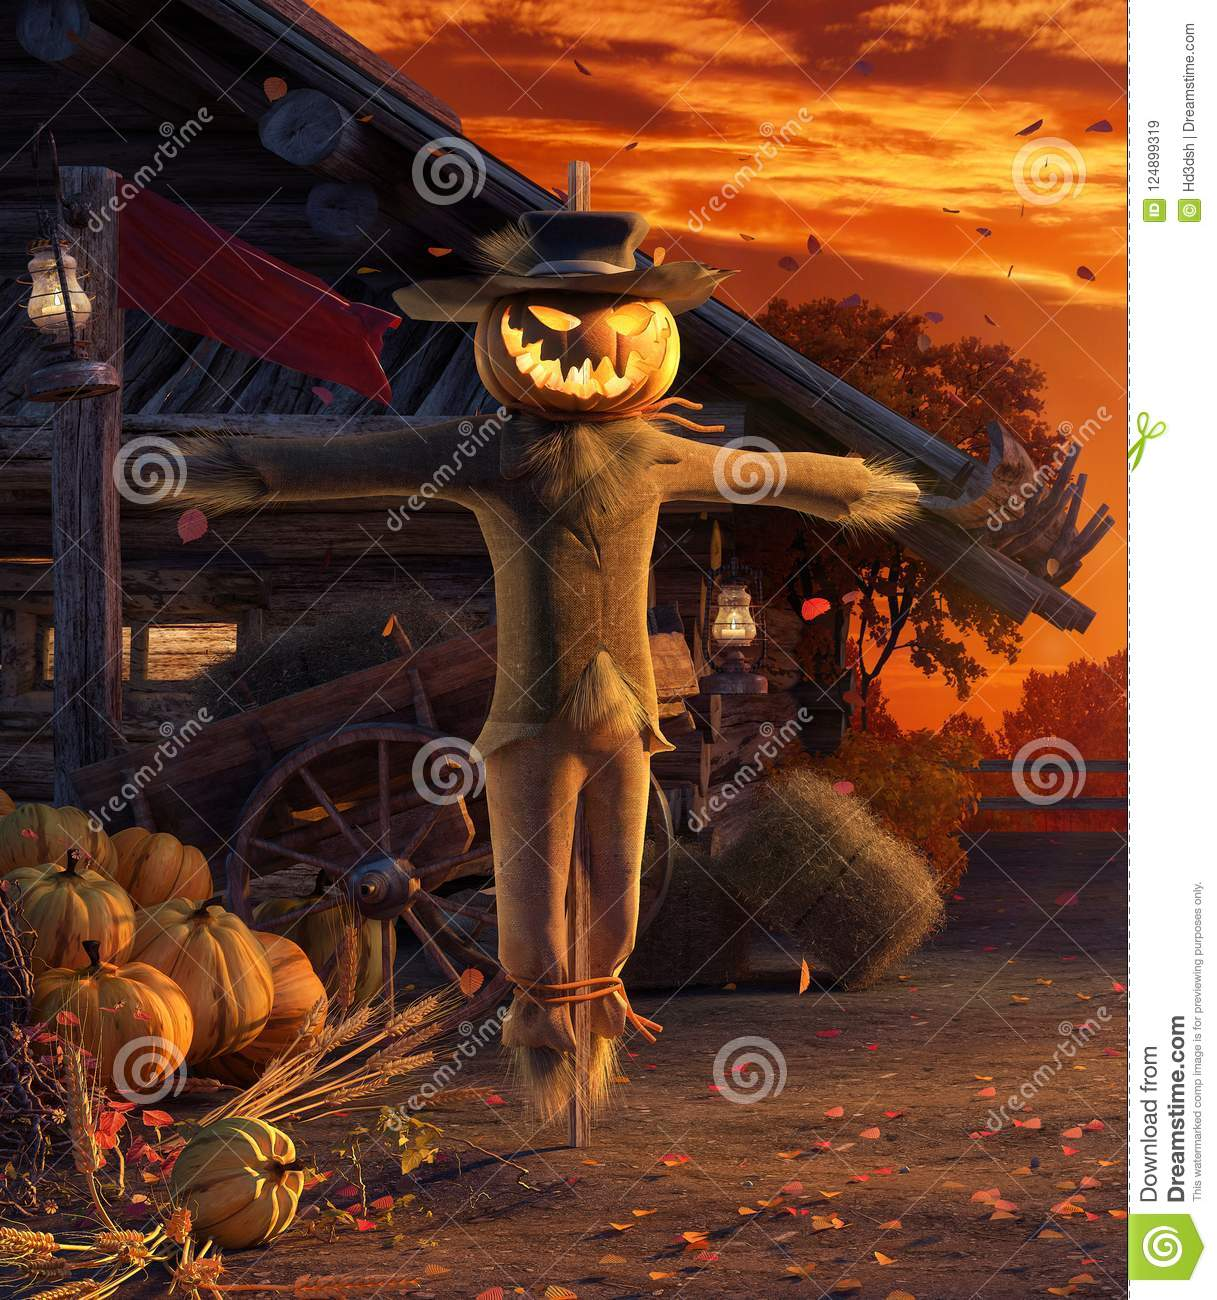 Fall in backyard with leaves falling from trees and Halloween pumpkin scarecrow, autumn background